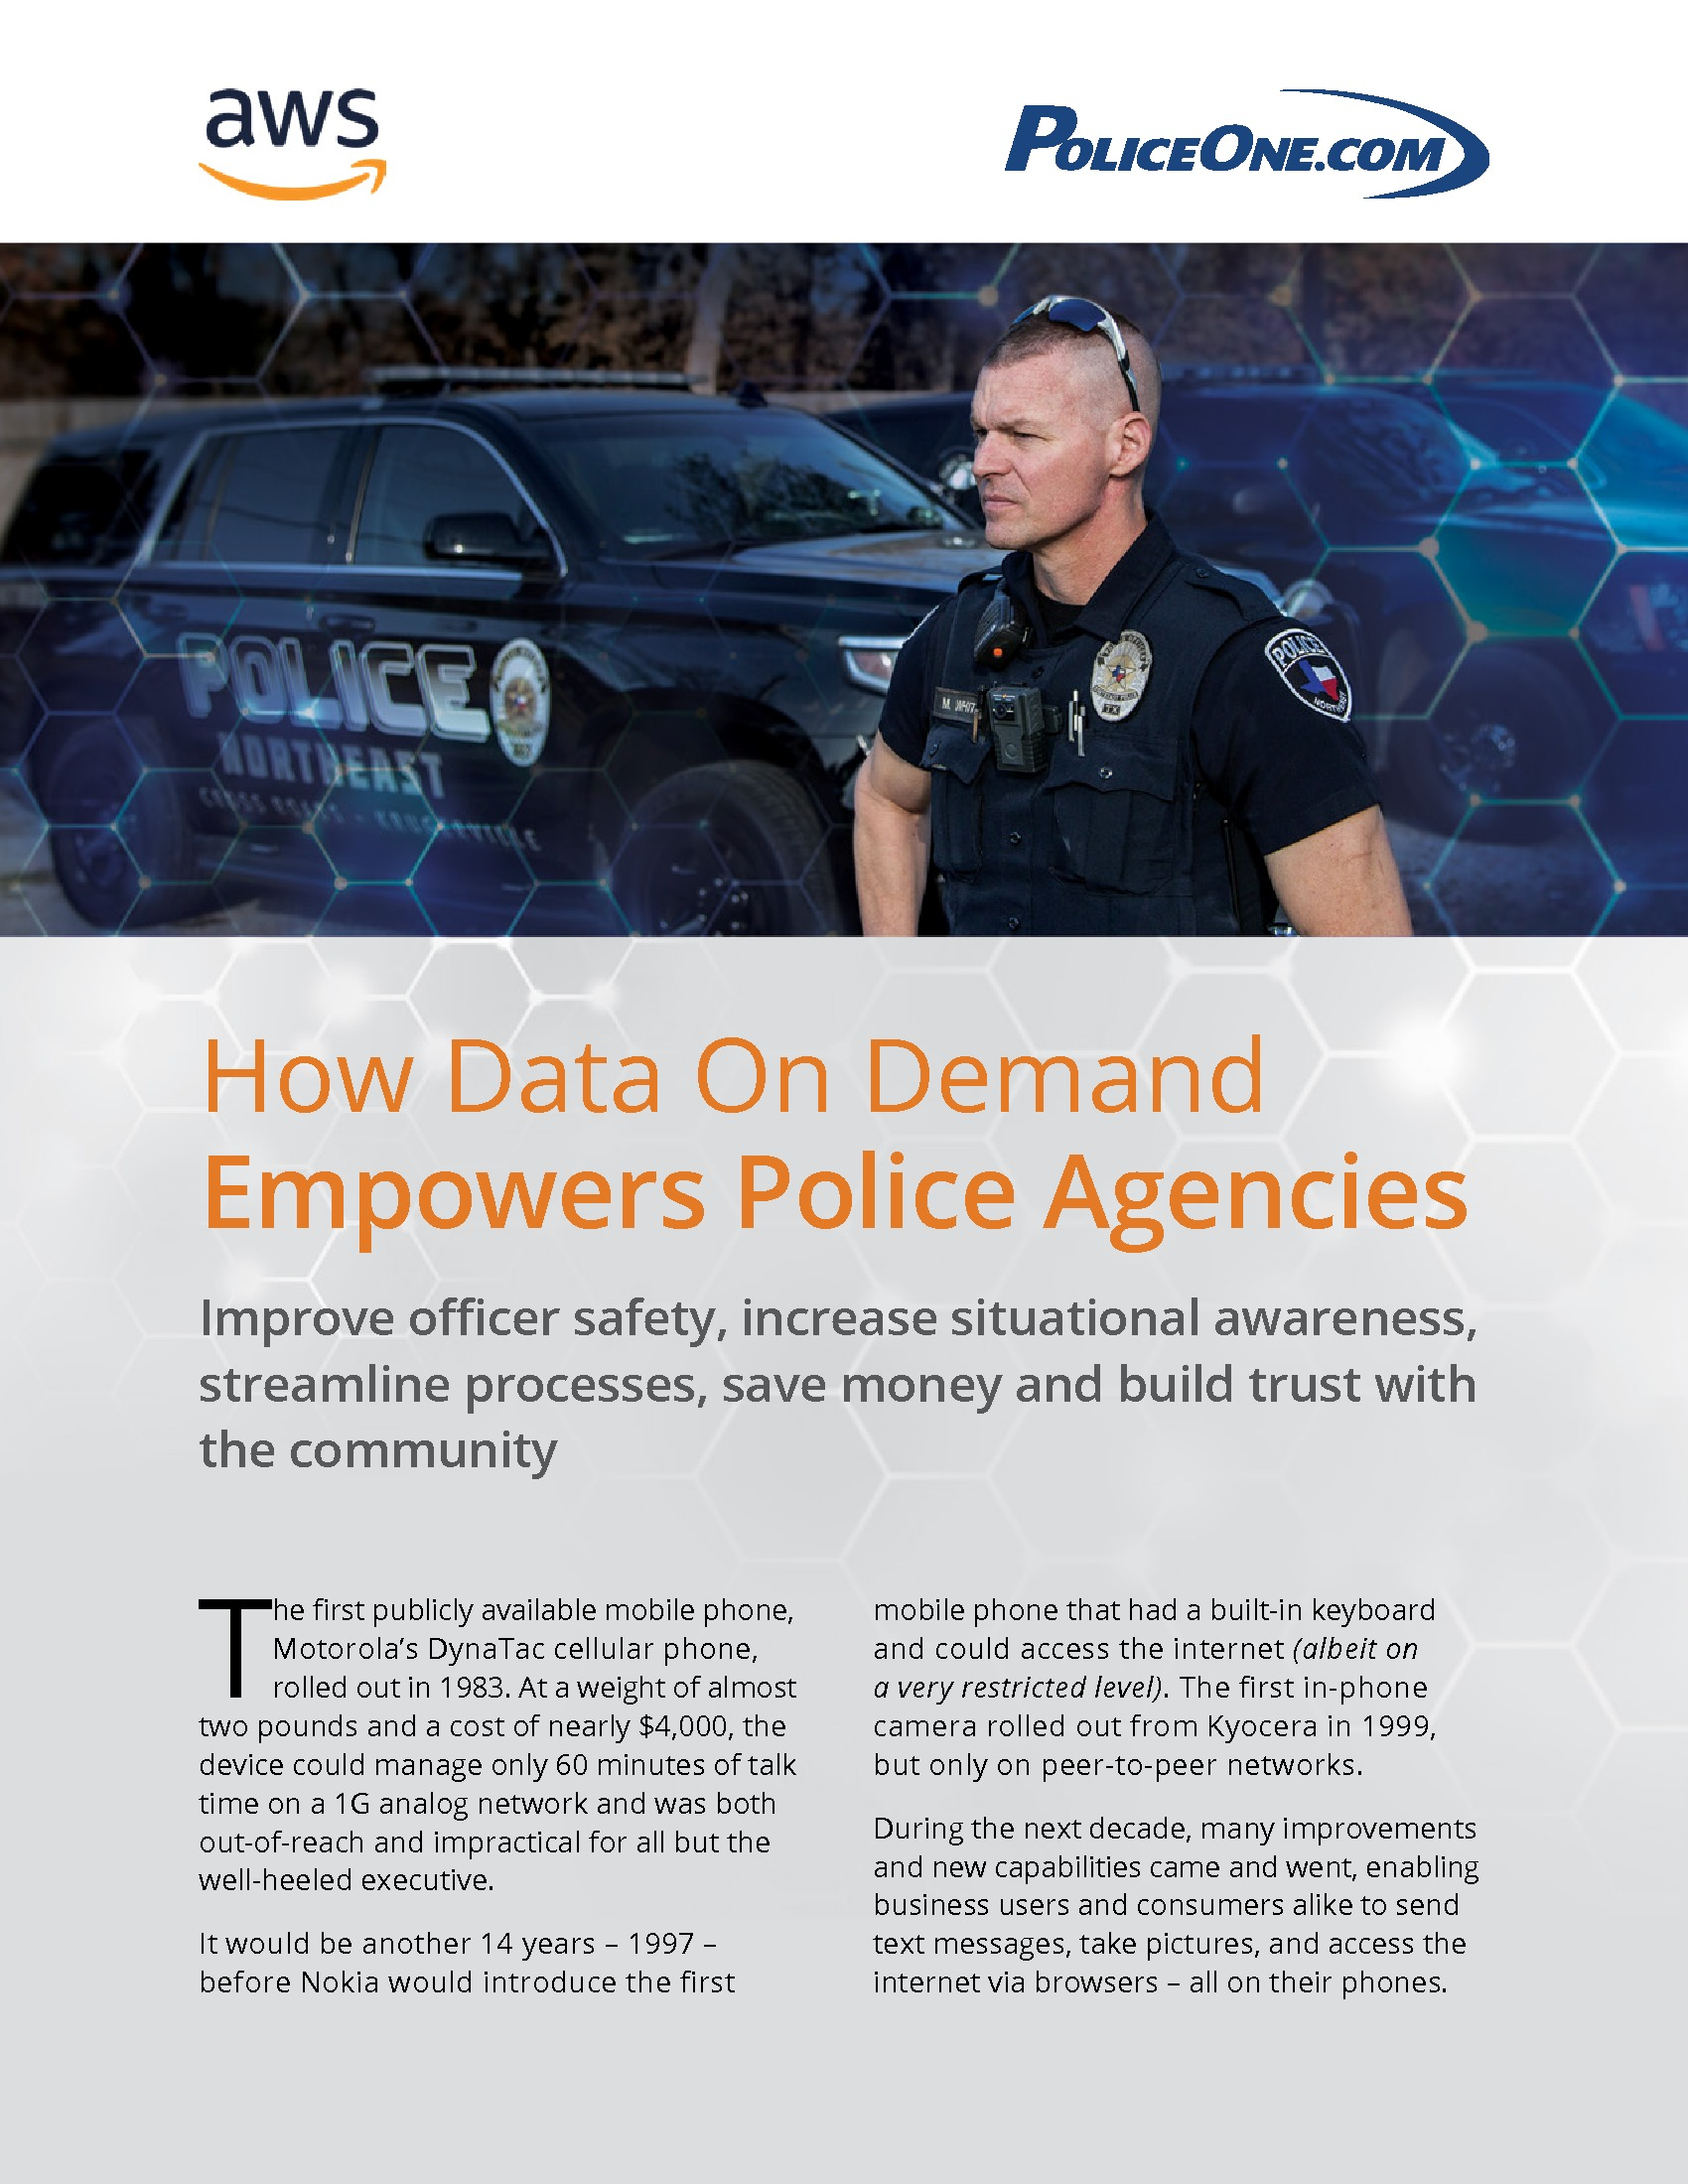 GT - Amazon - 2019 Public Safety Channel - Data on Demand Whitepaper